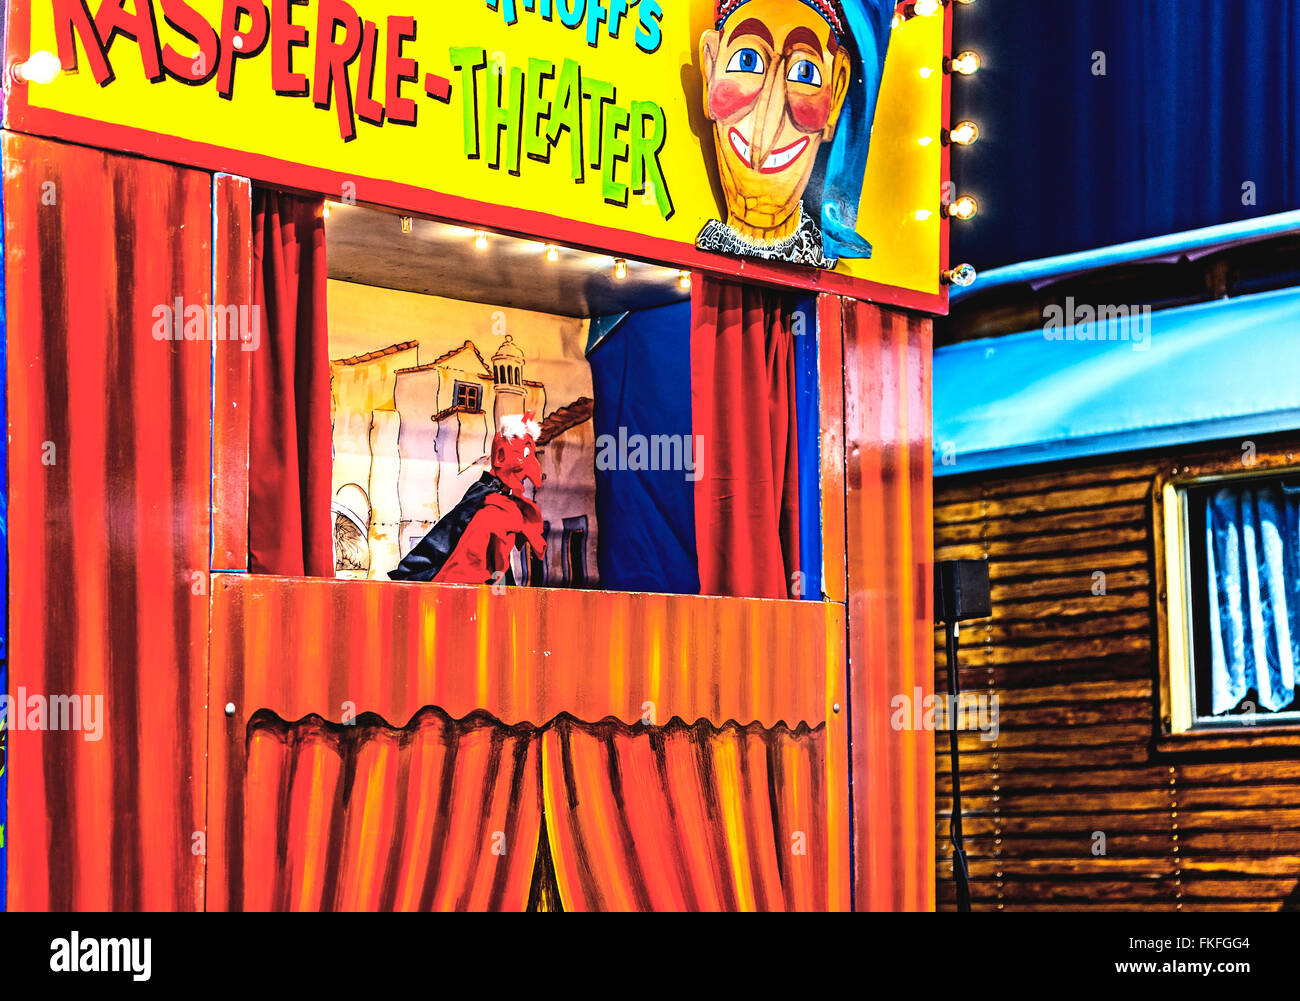 kasperletheater auf historischem Jahrmarkt; punch and judy show at a historical funfair - Stock Image